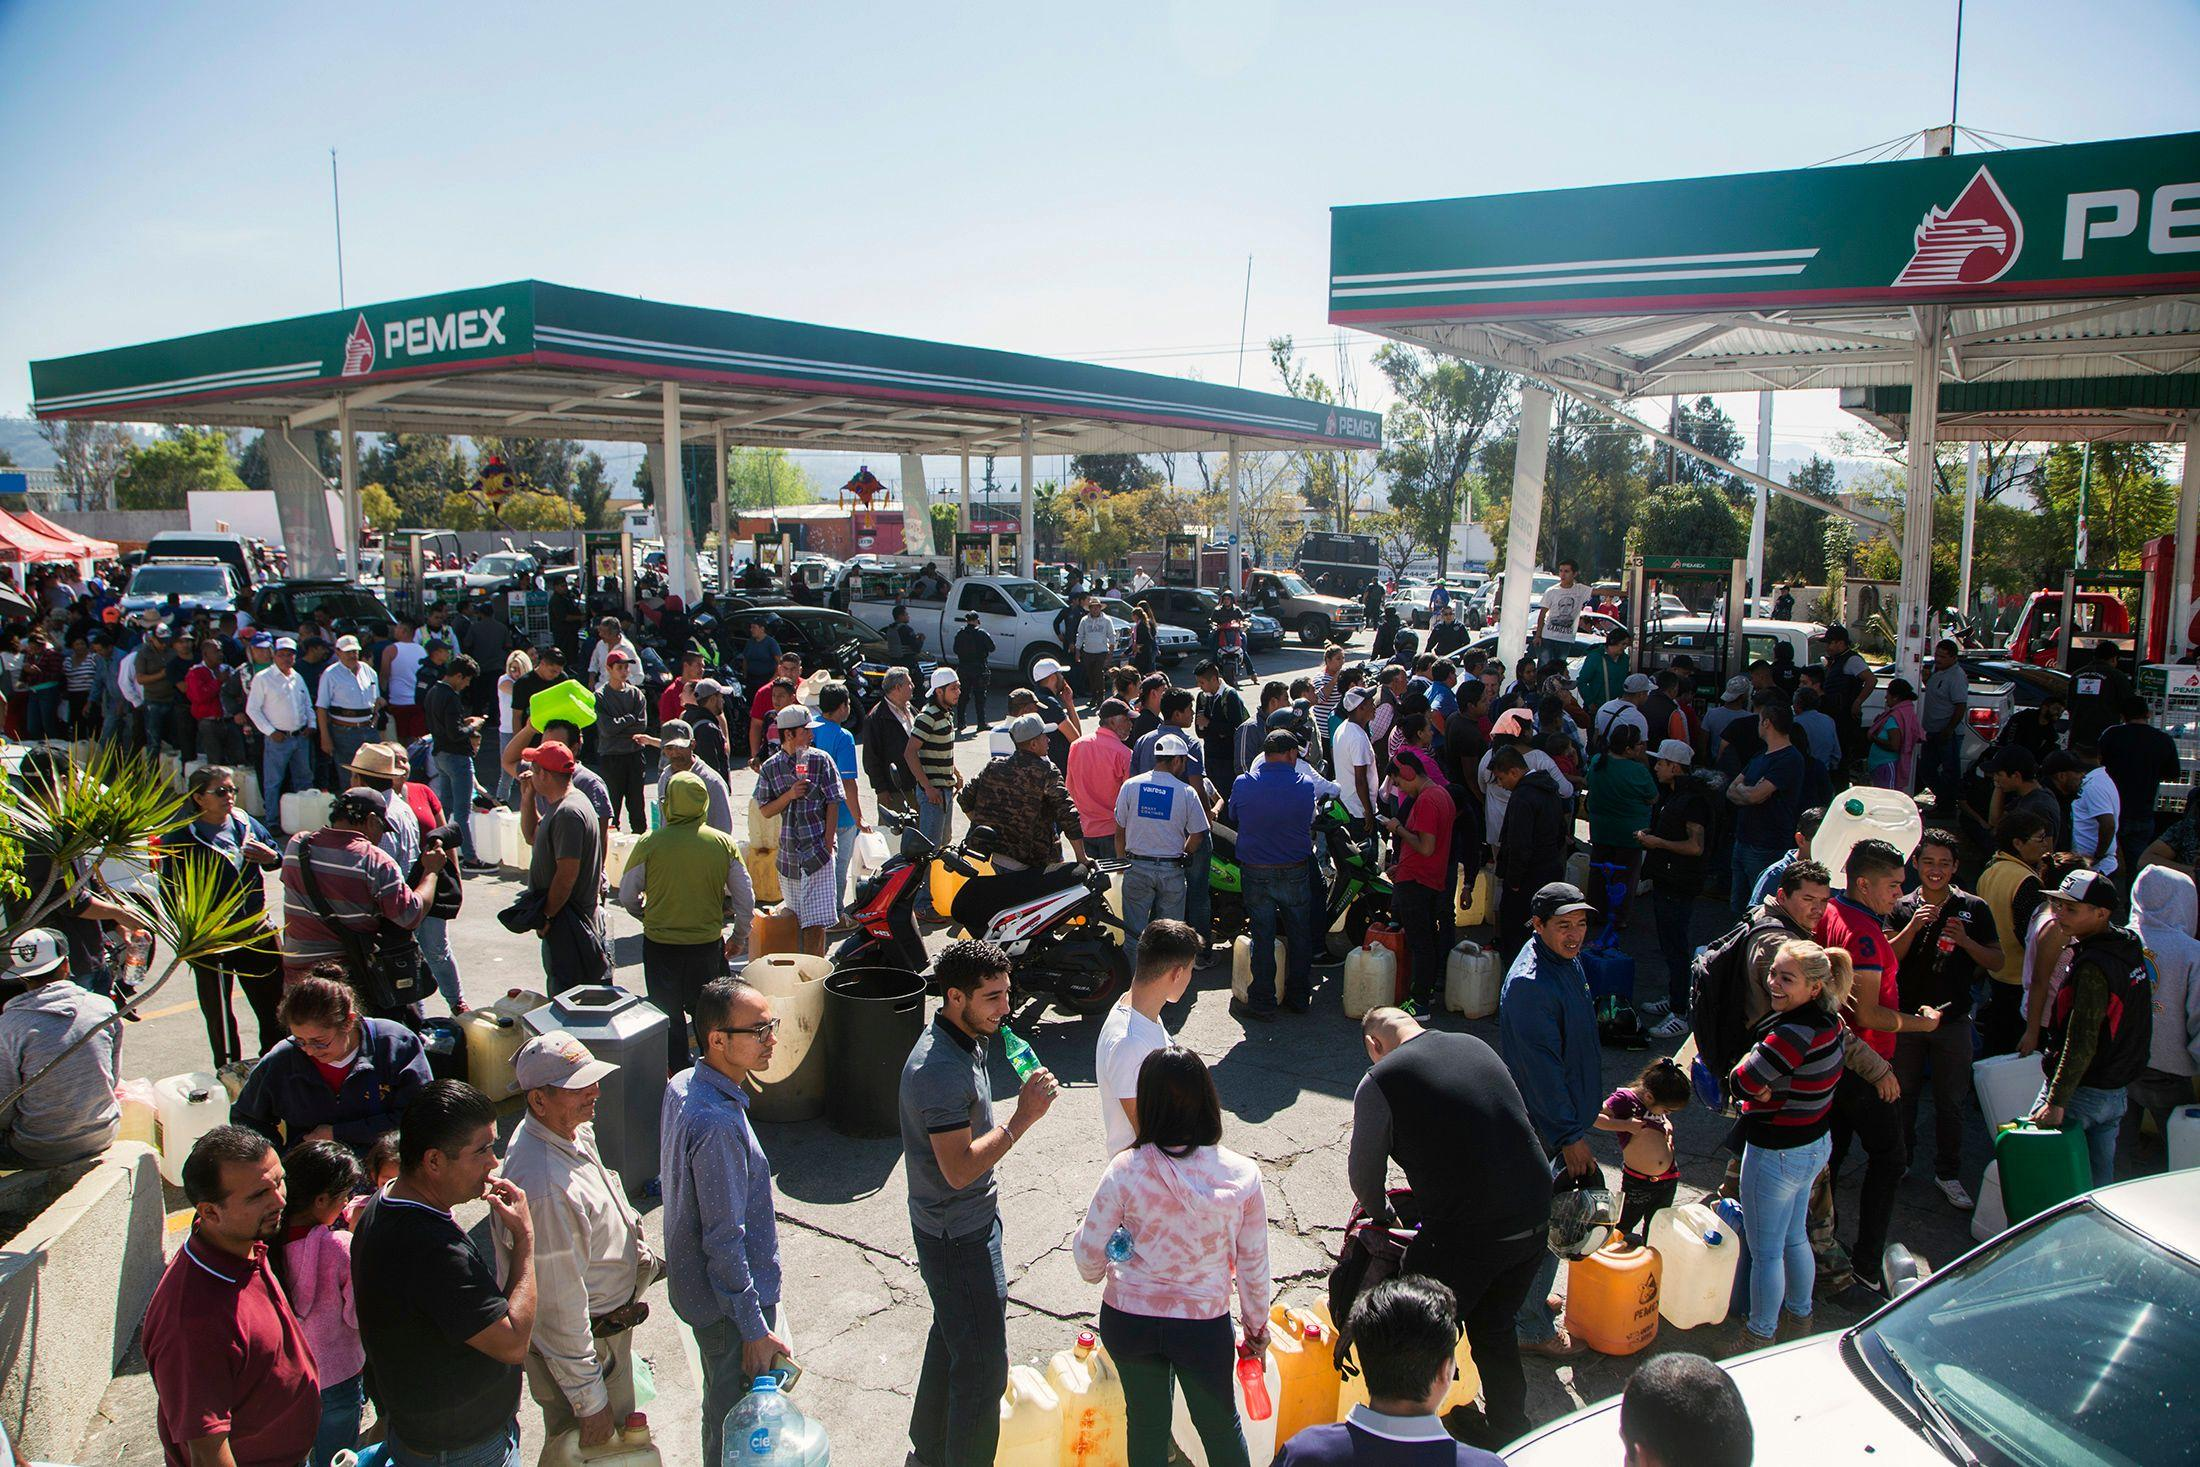 The fuel shortage in Mexico has sparked uproar in certain states